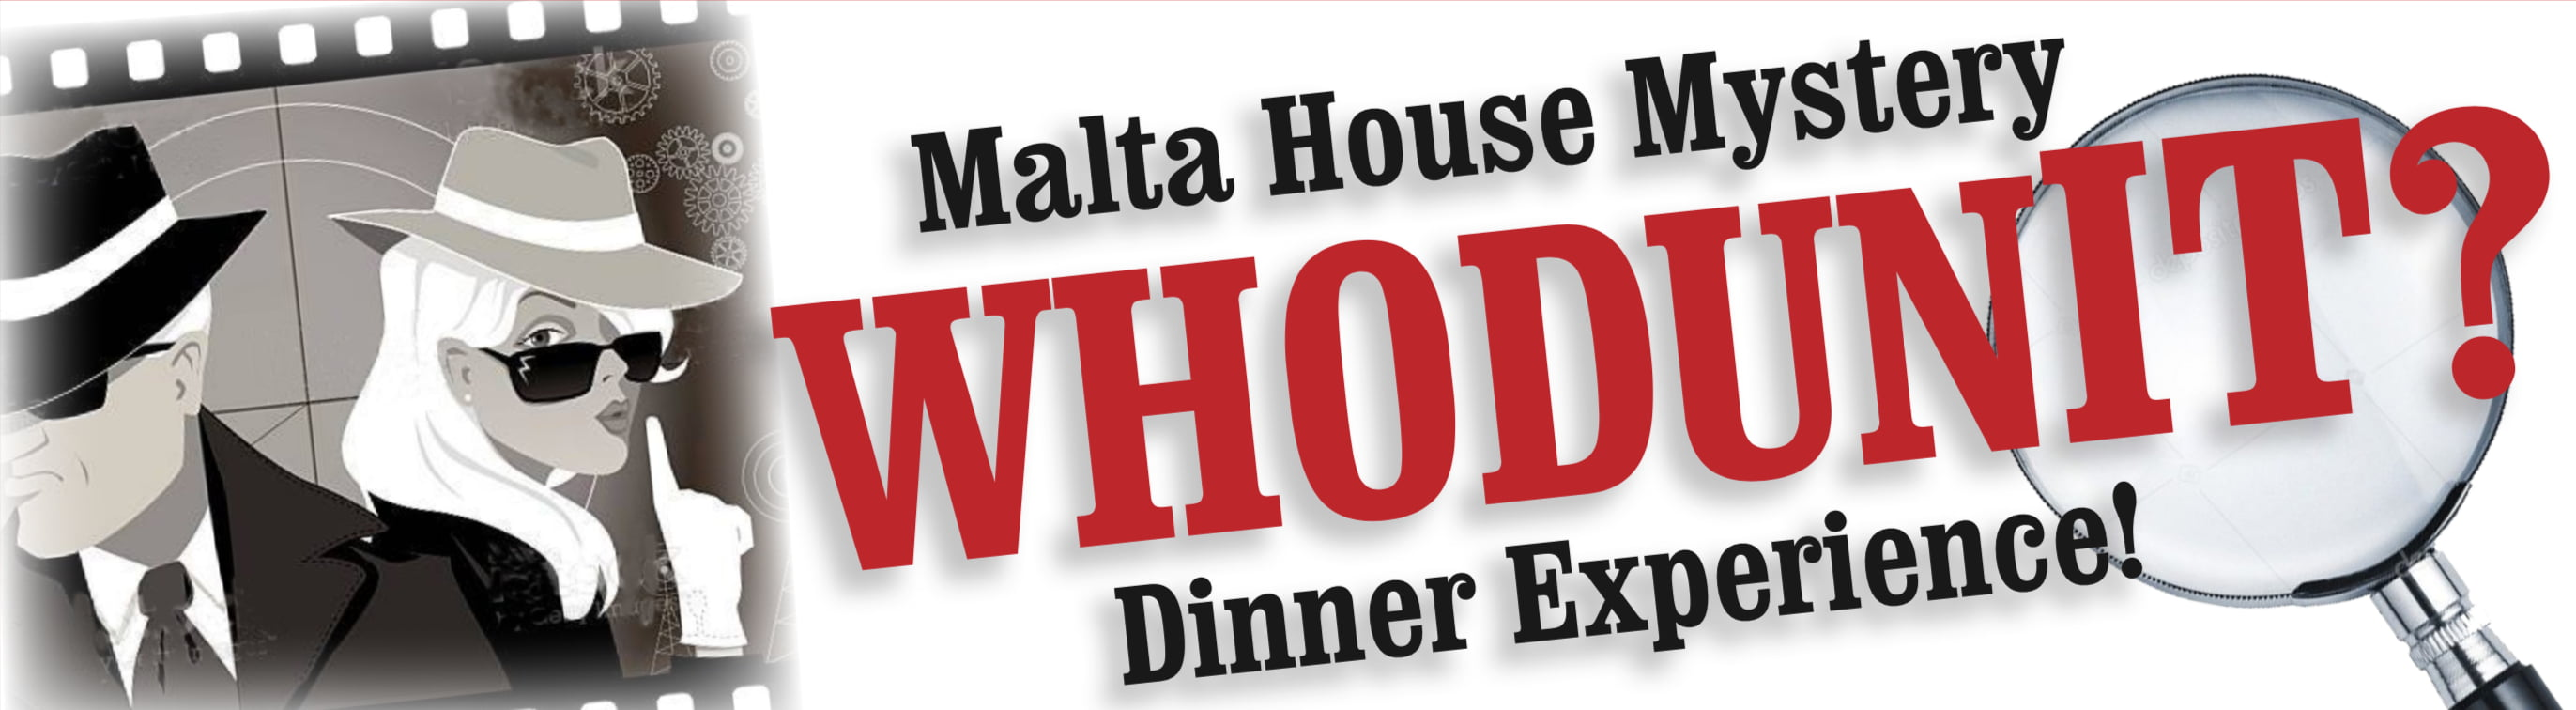 Whodunit Dinner Experience